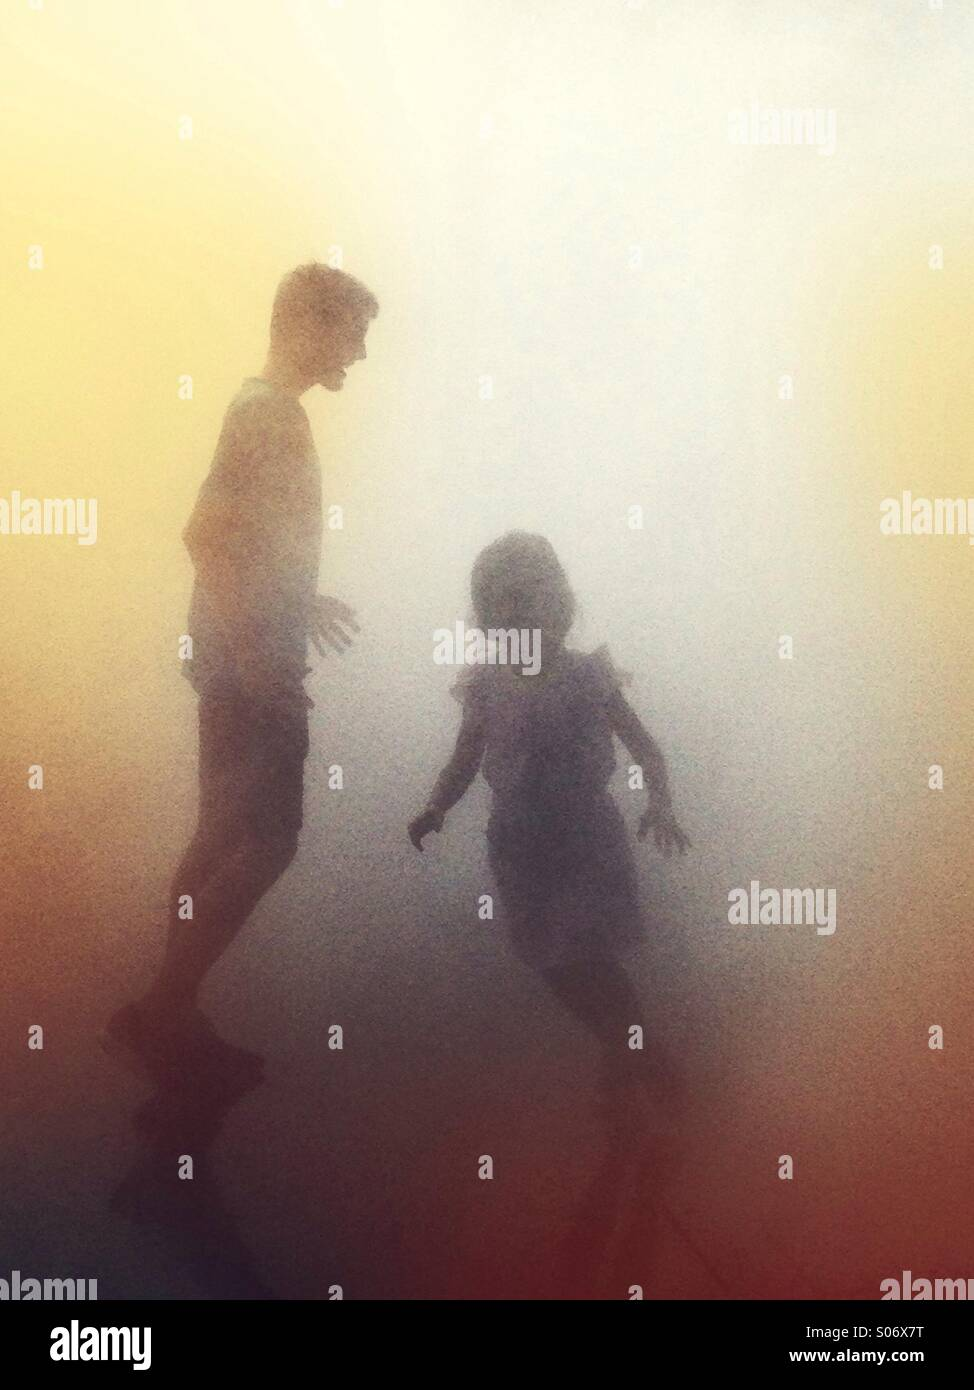 Man and child crossing paths in the mist - Stock Image